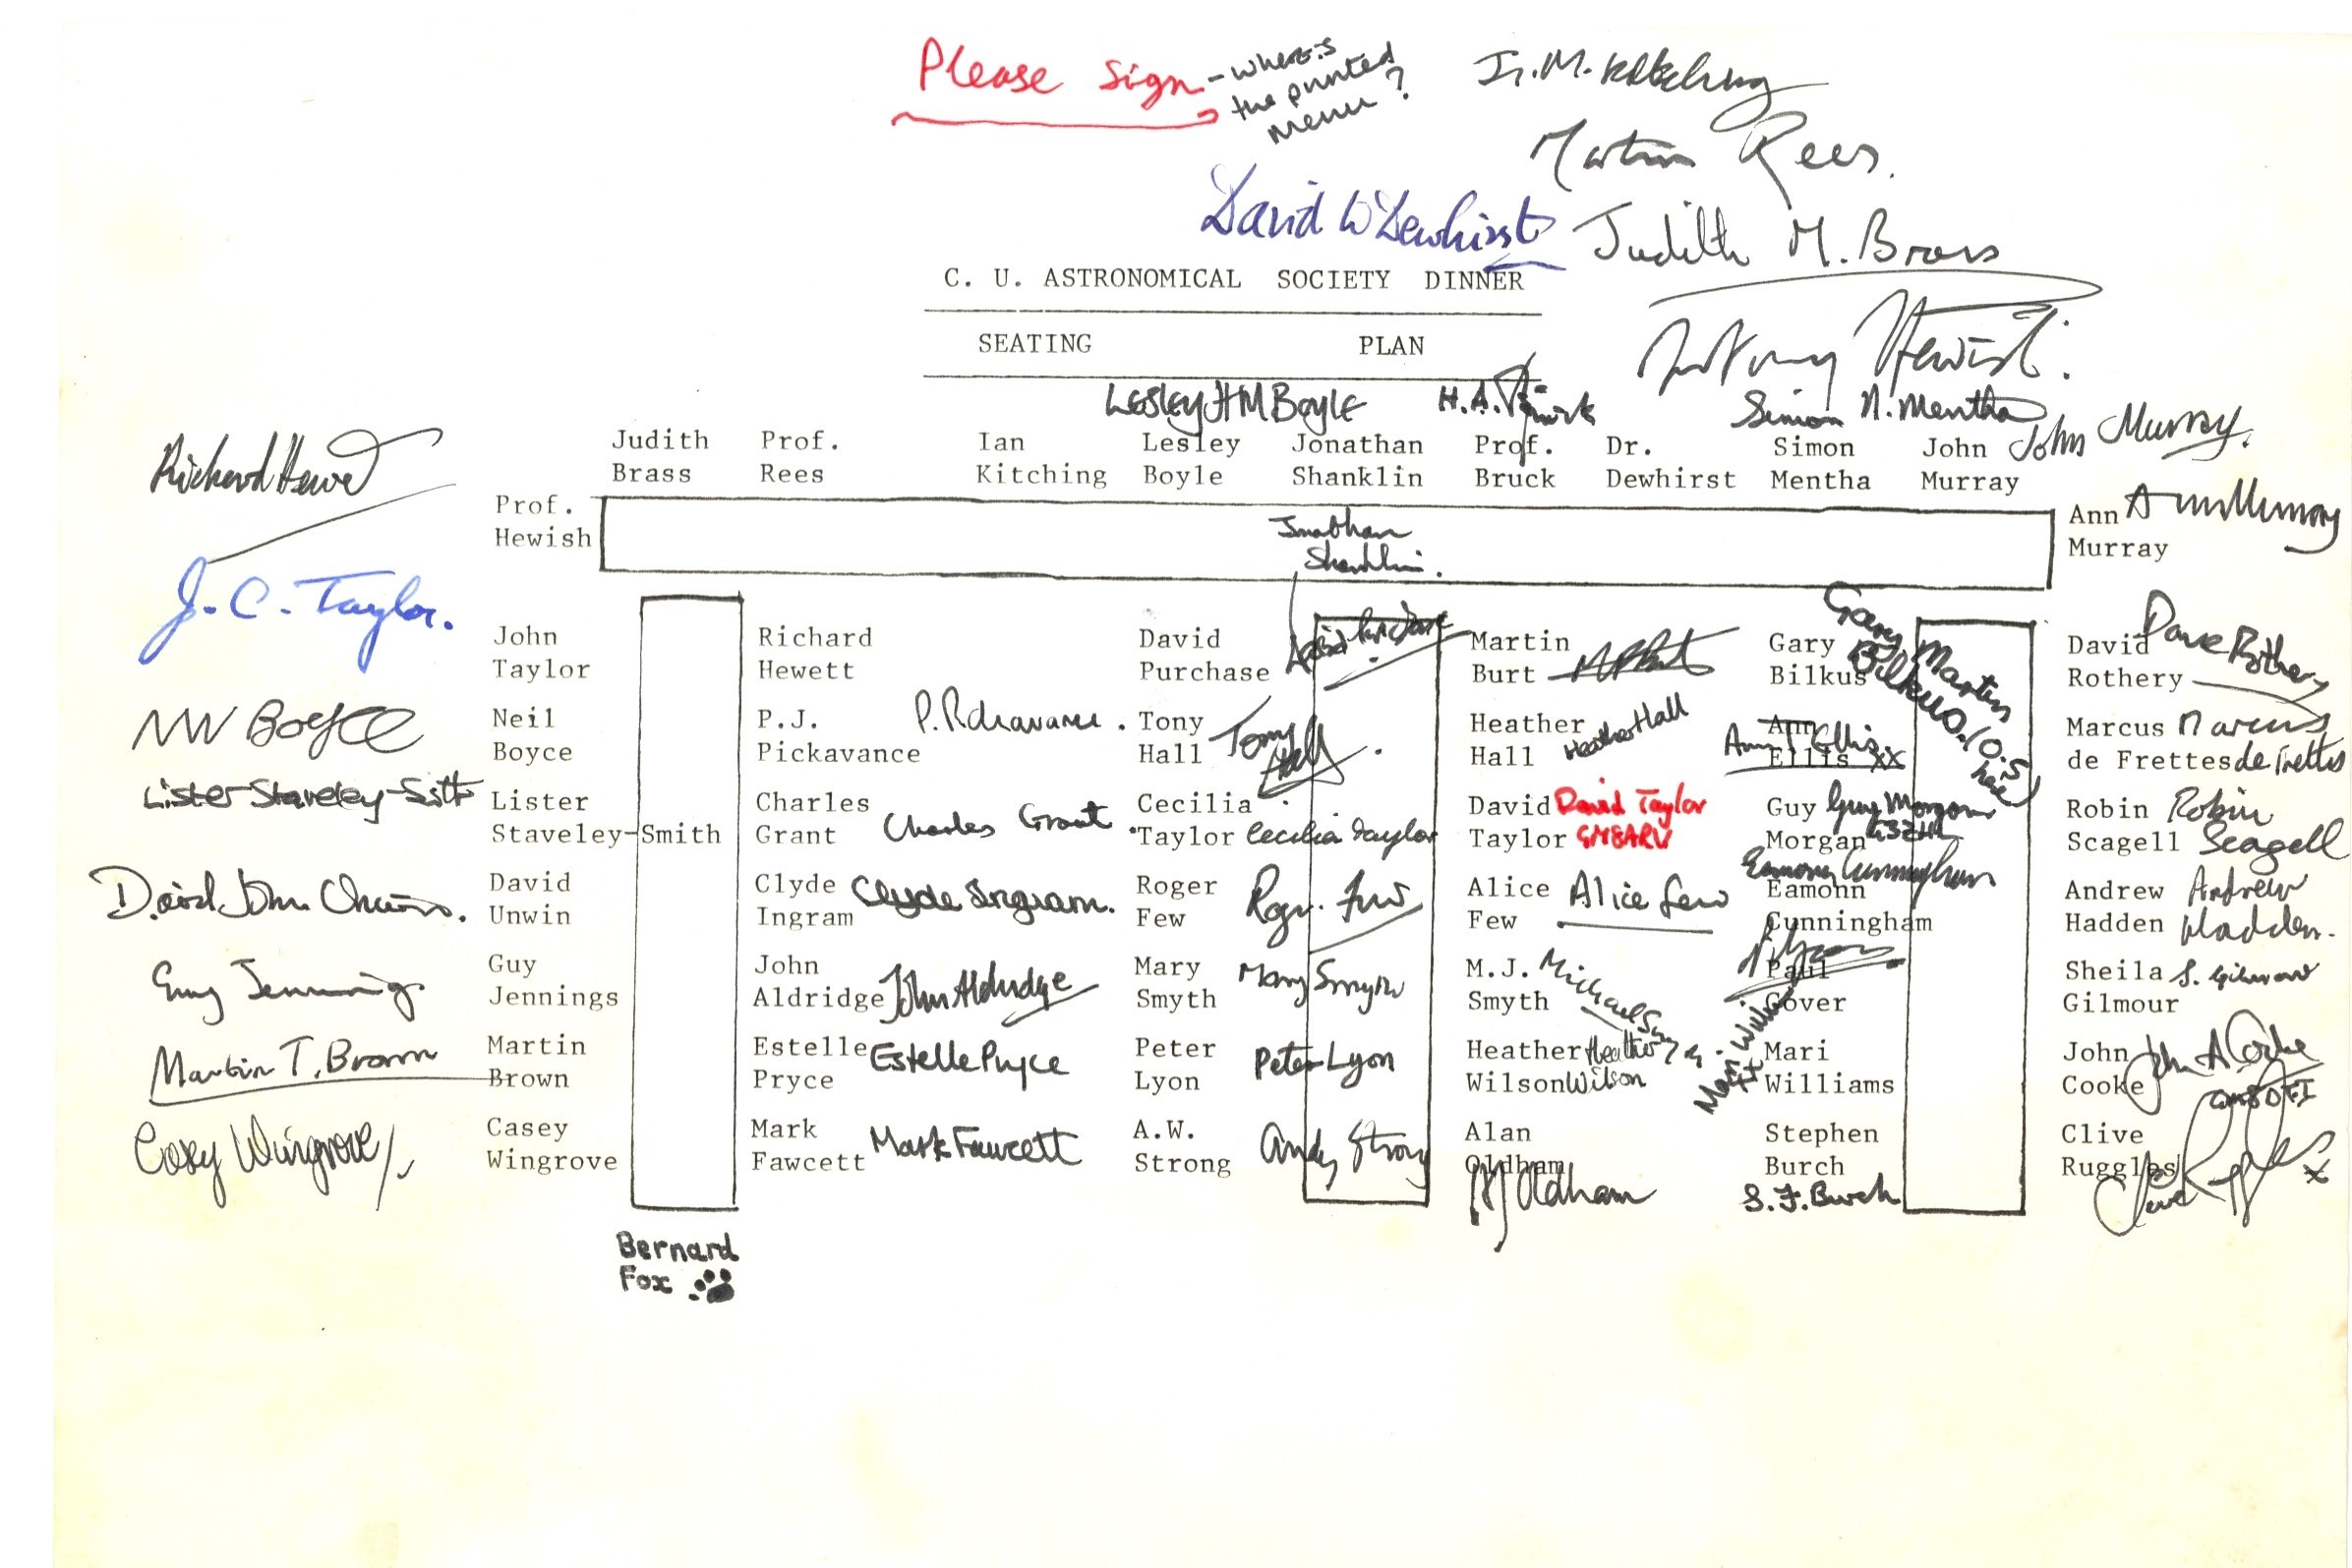 Signed seating plan for 35th Annual Dinner